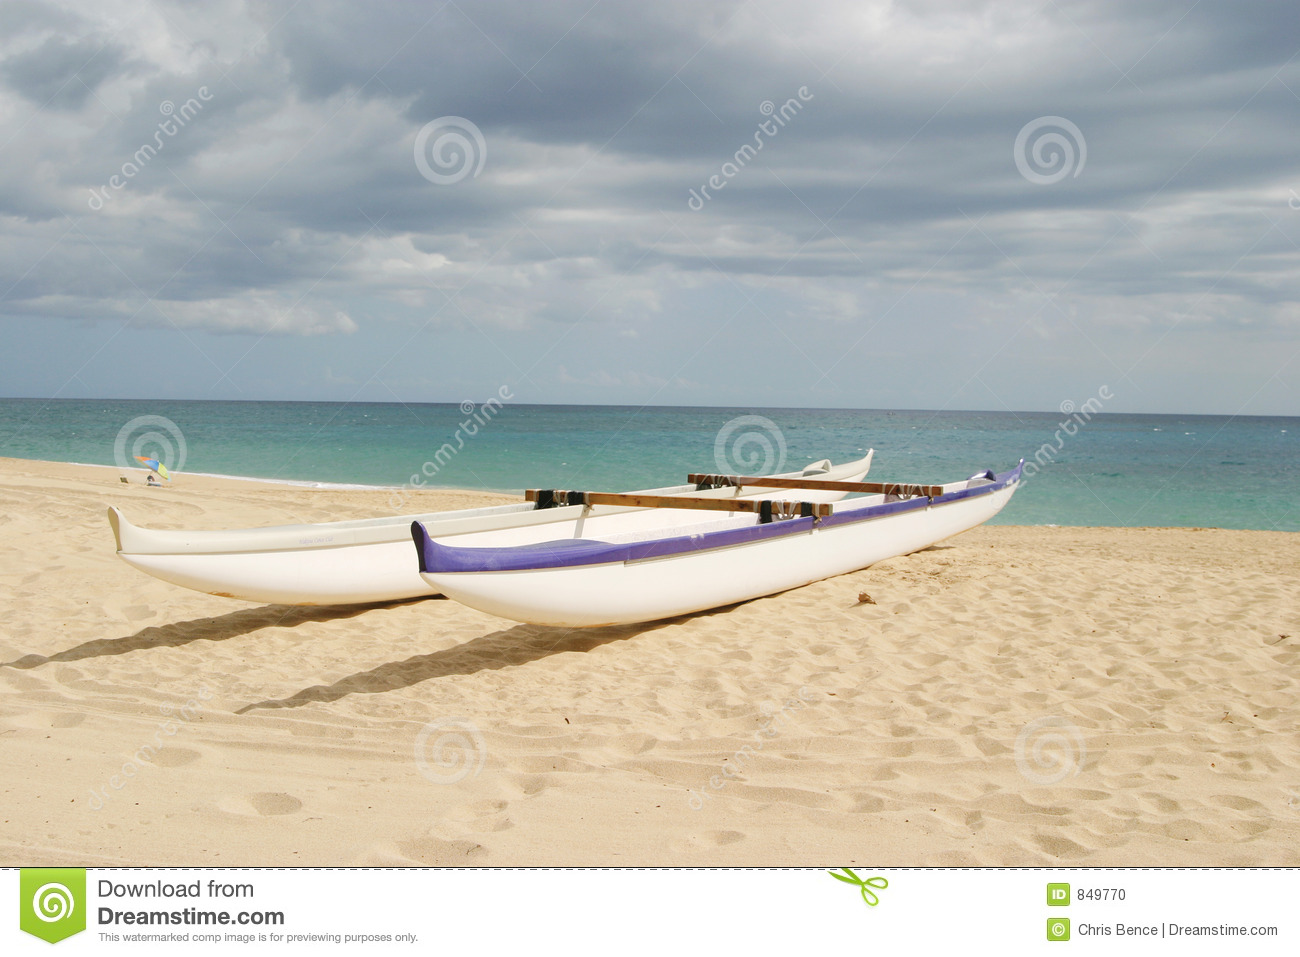 Two Boats on the Sand